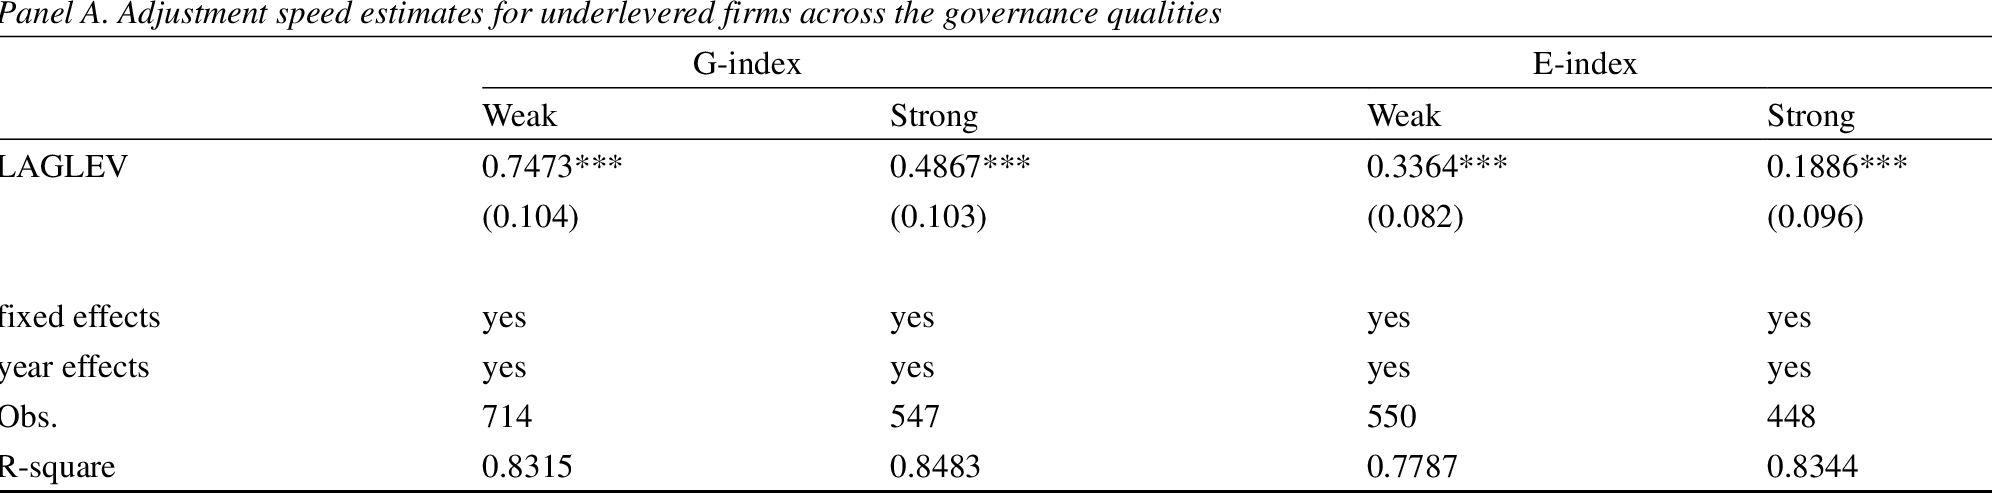 Pdf Corporate Governance And The Dynamics Of Capital Structure New Evidence Semantic Scholar